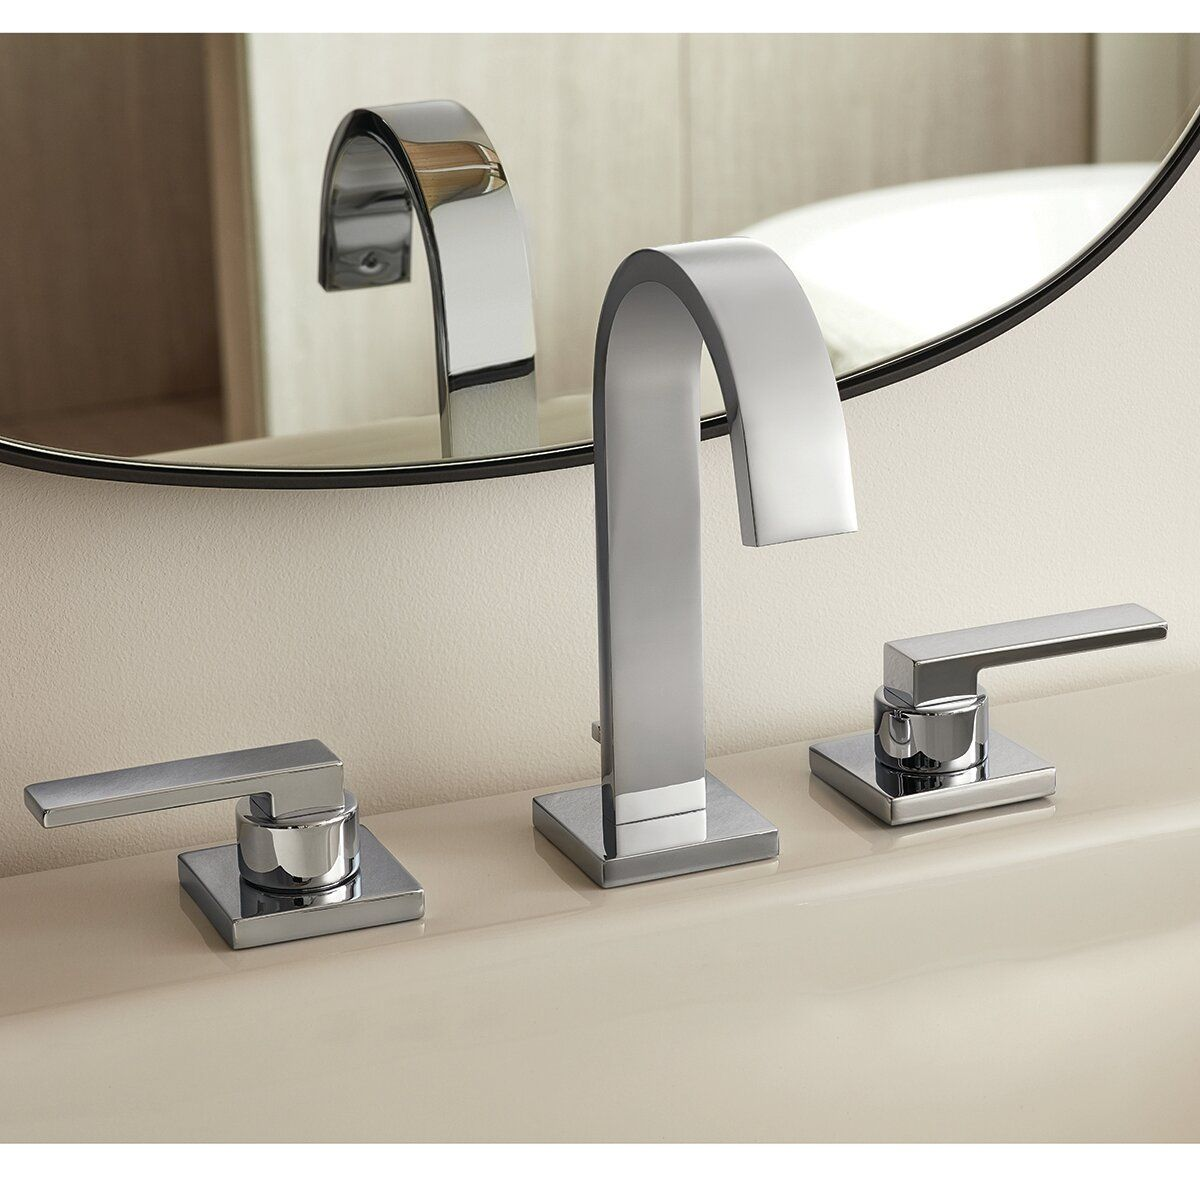 Lura Widespread Bathroom Faucet With Drain Assembly In 2021 Widespread Bathroom Faucet Bathroom Faucets Faucet